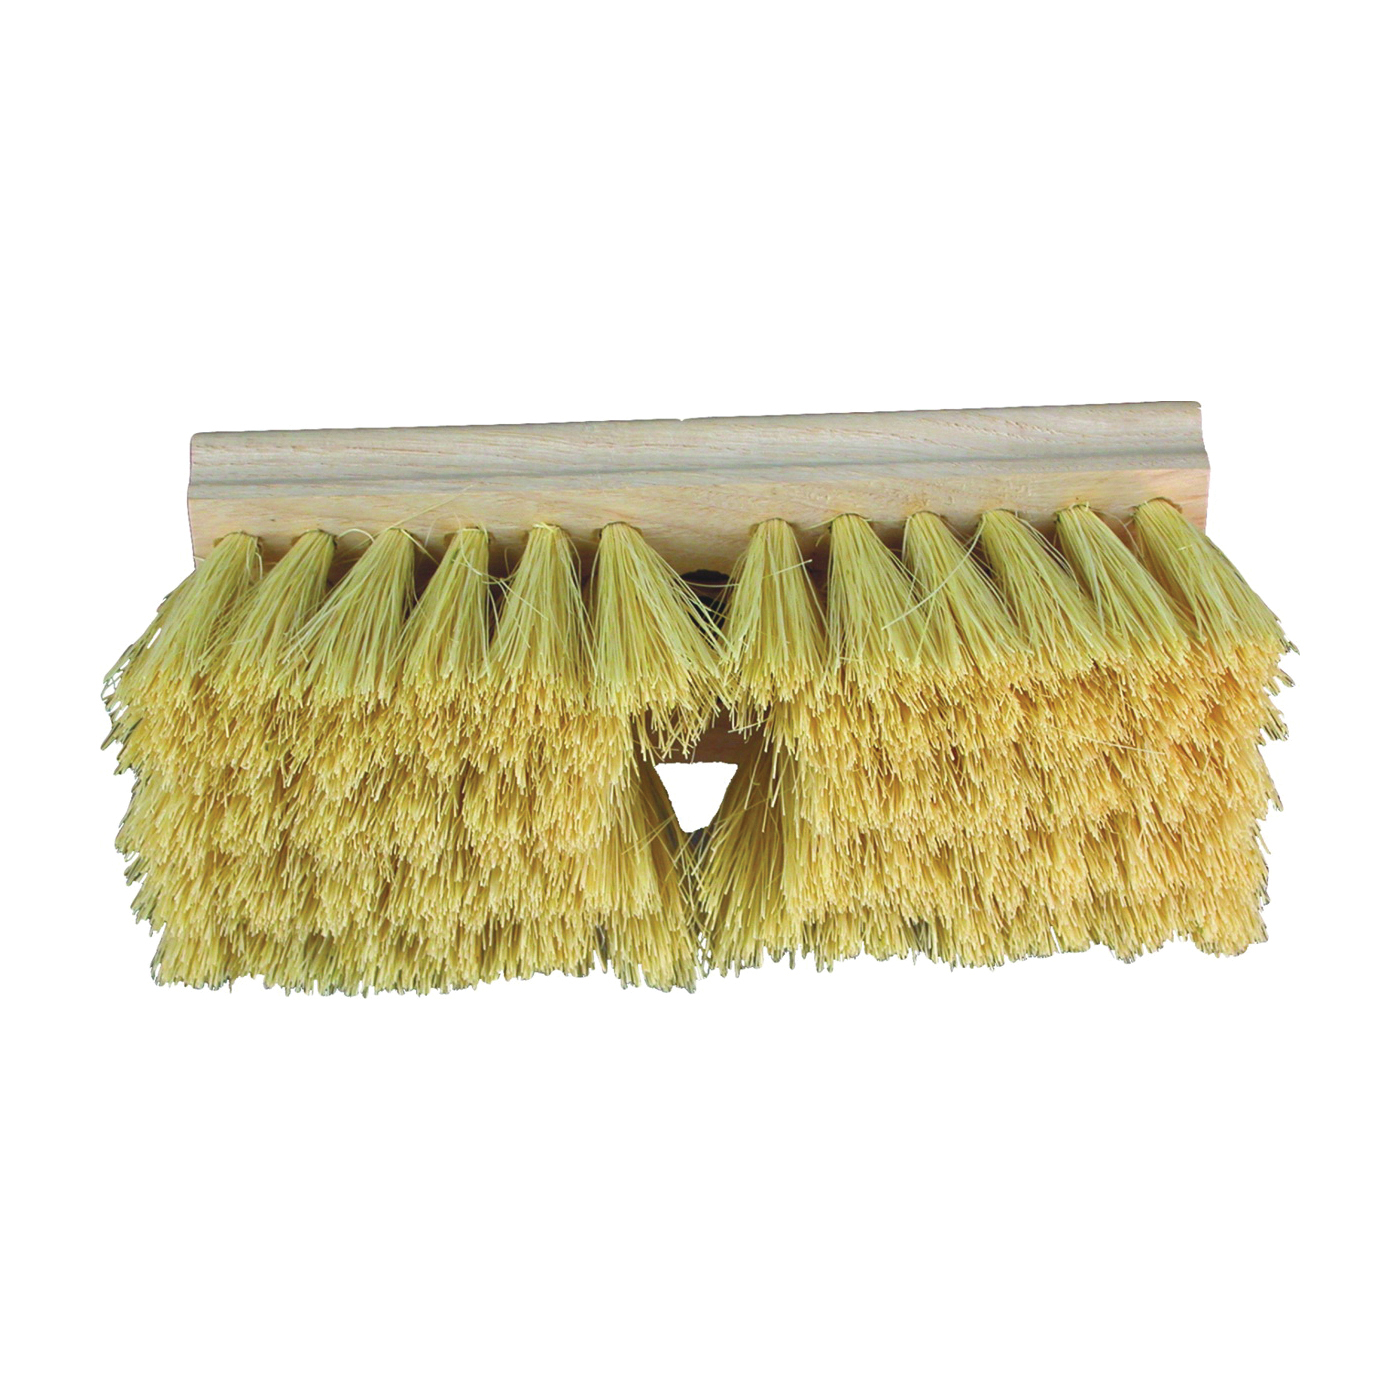 Picture of BIRDWELL 2013-12 Roof Brush, 2 in L Trim